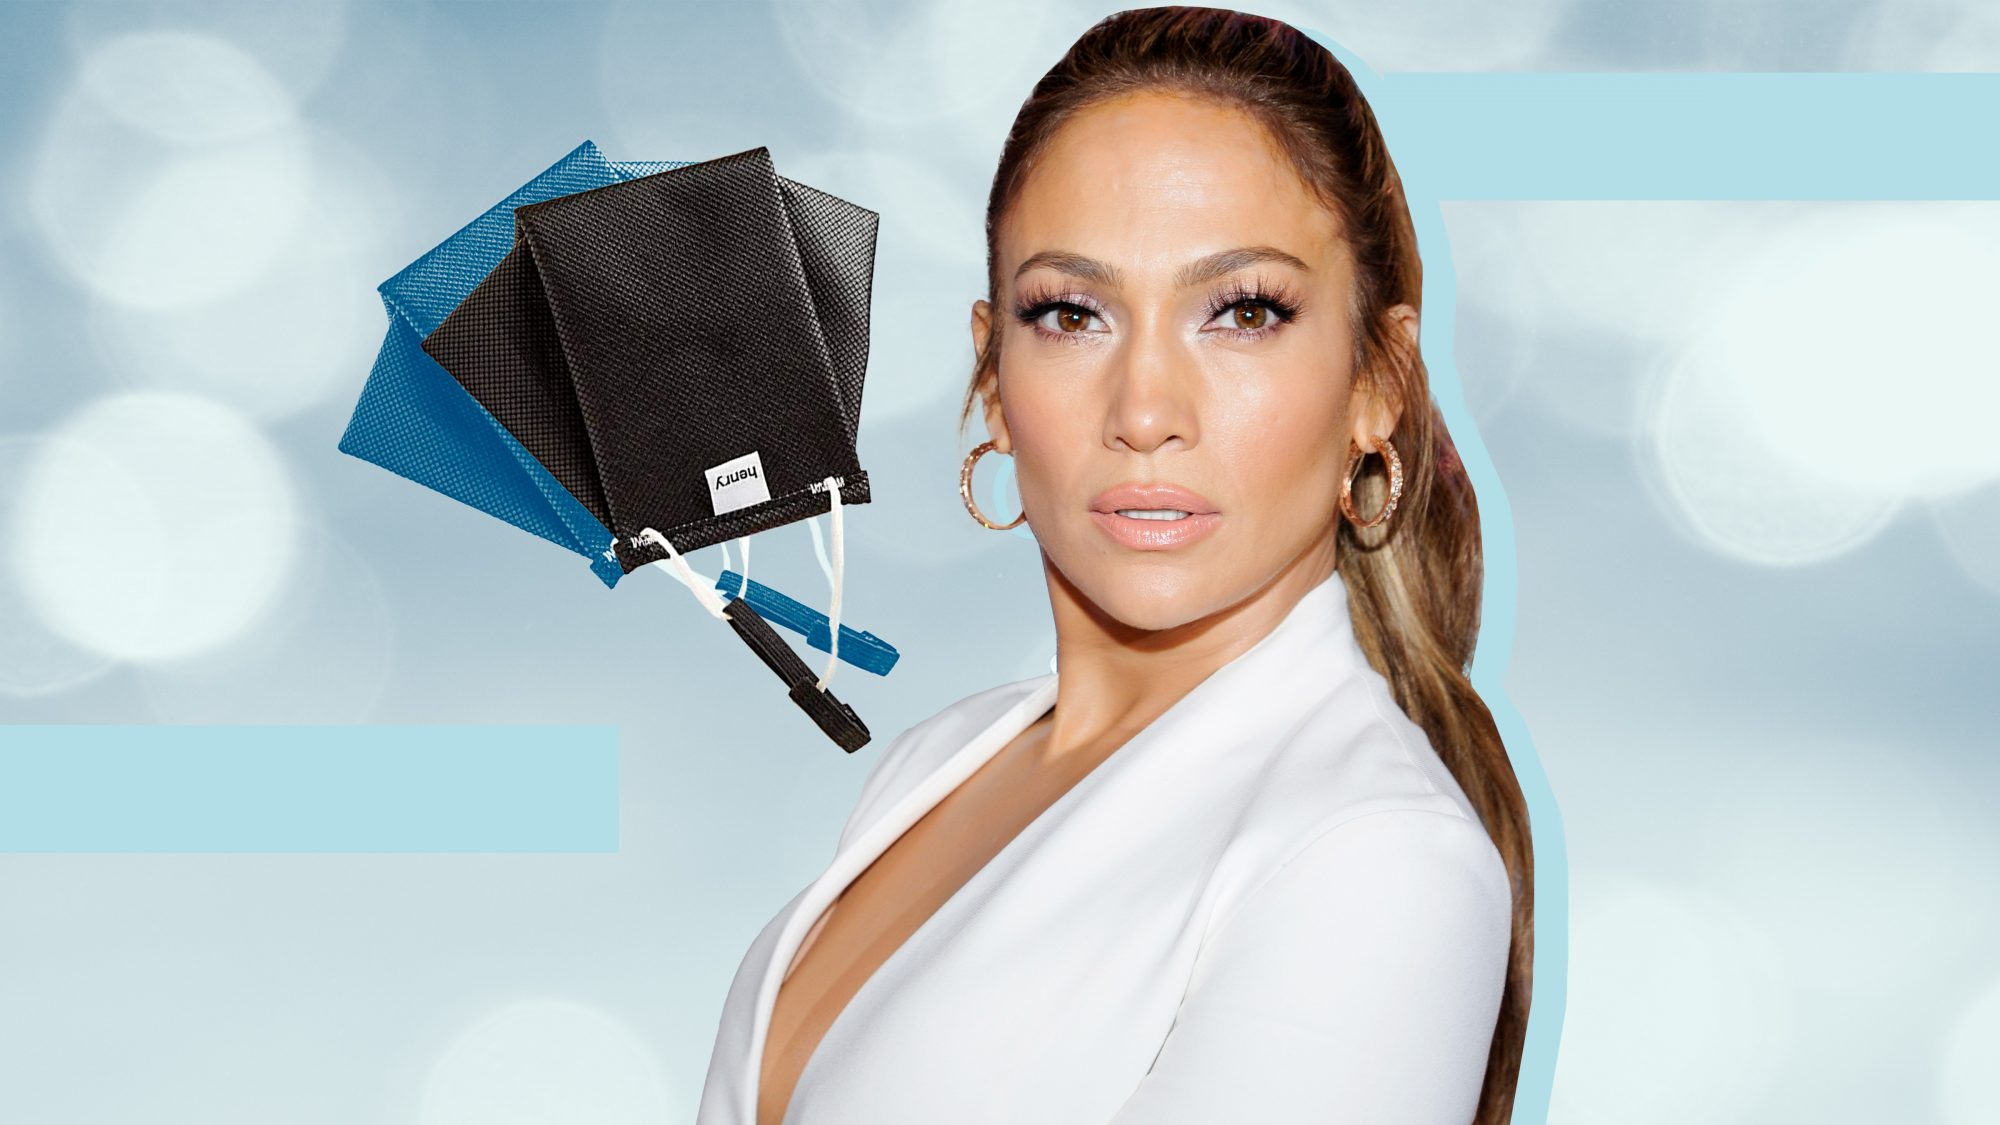 Jennifer-Lopez-Keeps-Wearing-This-Sleek-Designer-Face-Mask-That-You-Can-Get-On-Amazon-GettyImages-632846580